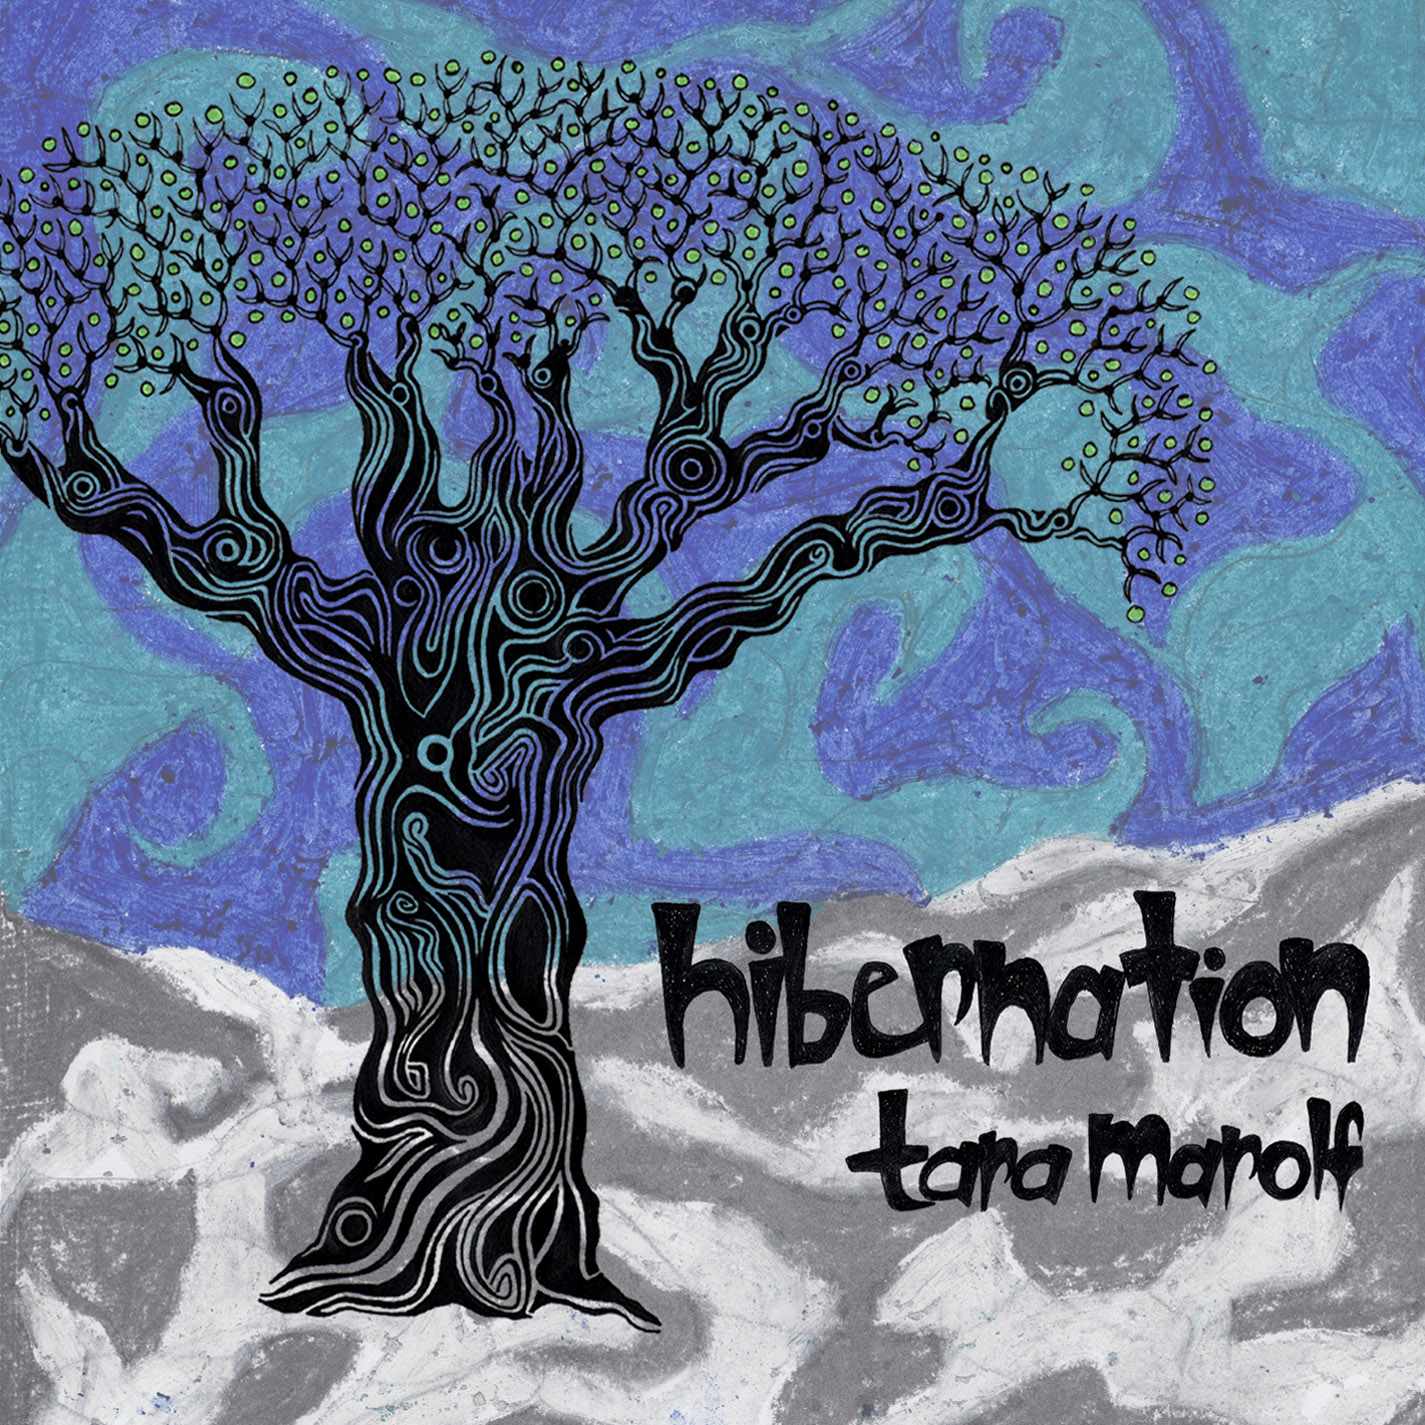 Tara Marolf - Hibernation (Music Album Art), by Tara Marolf